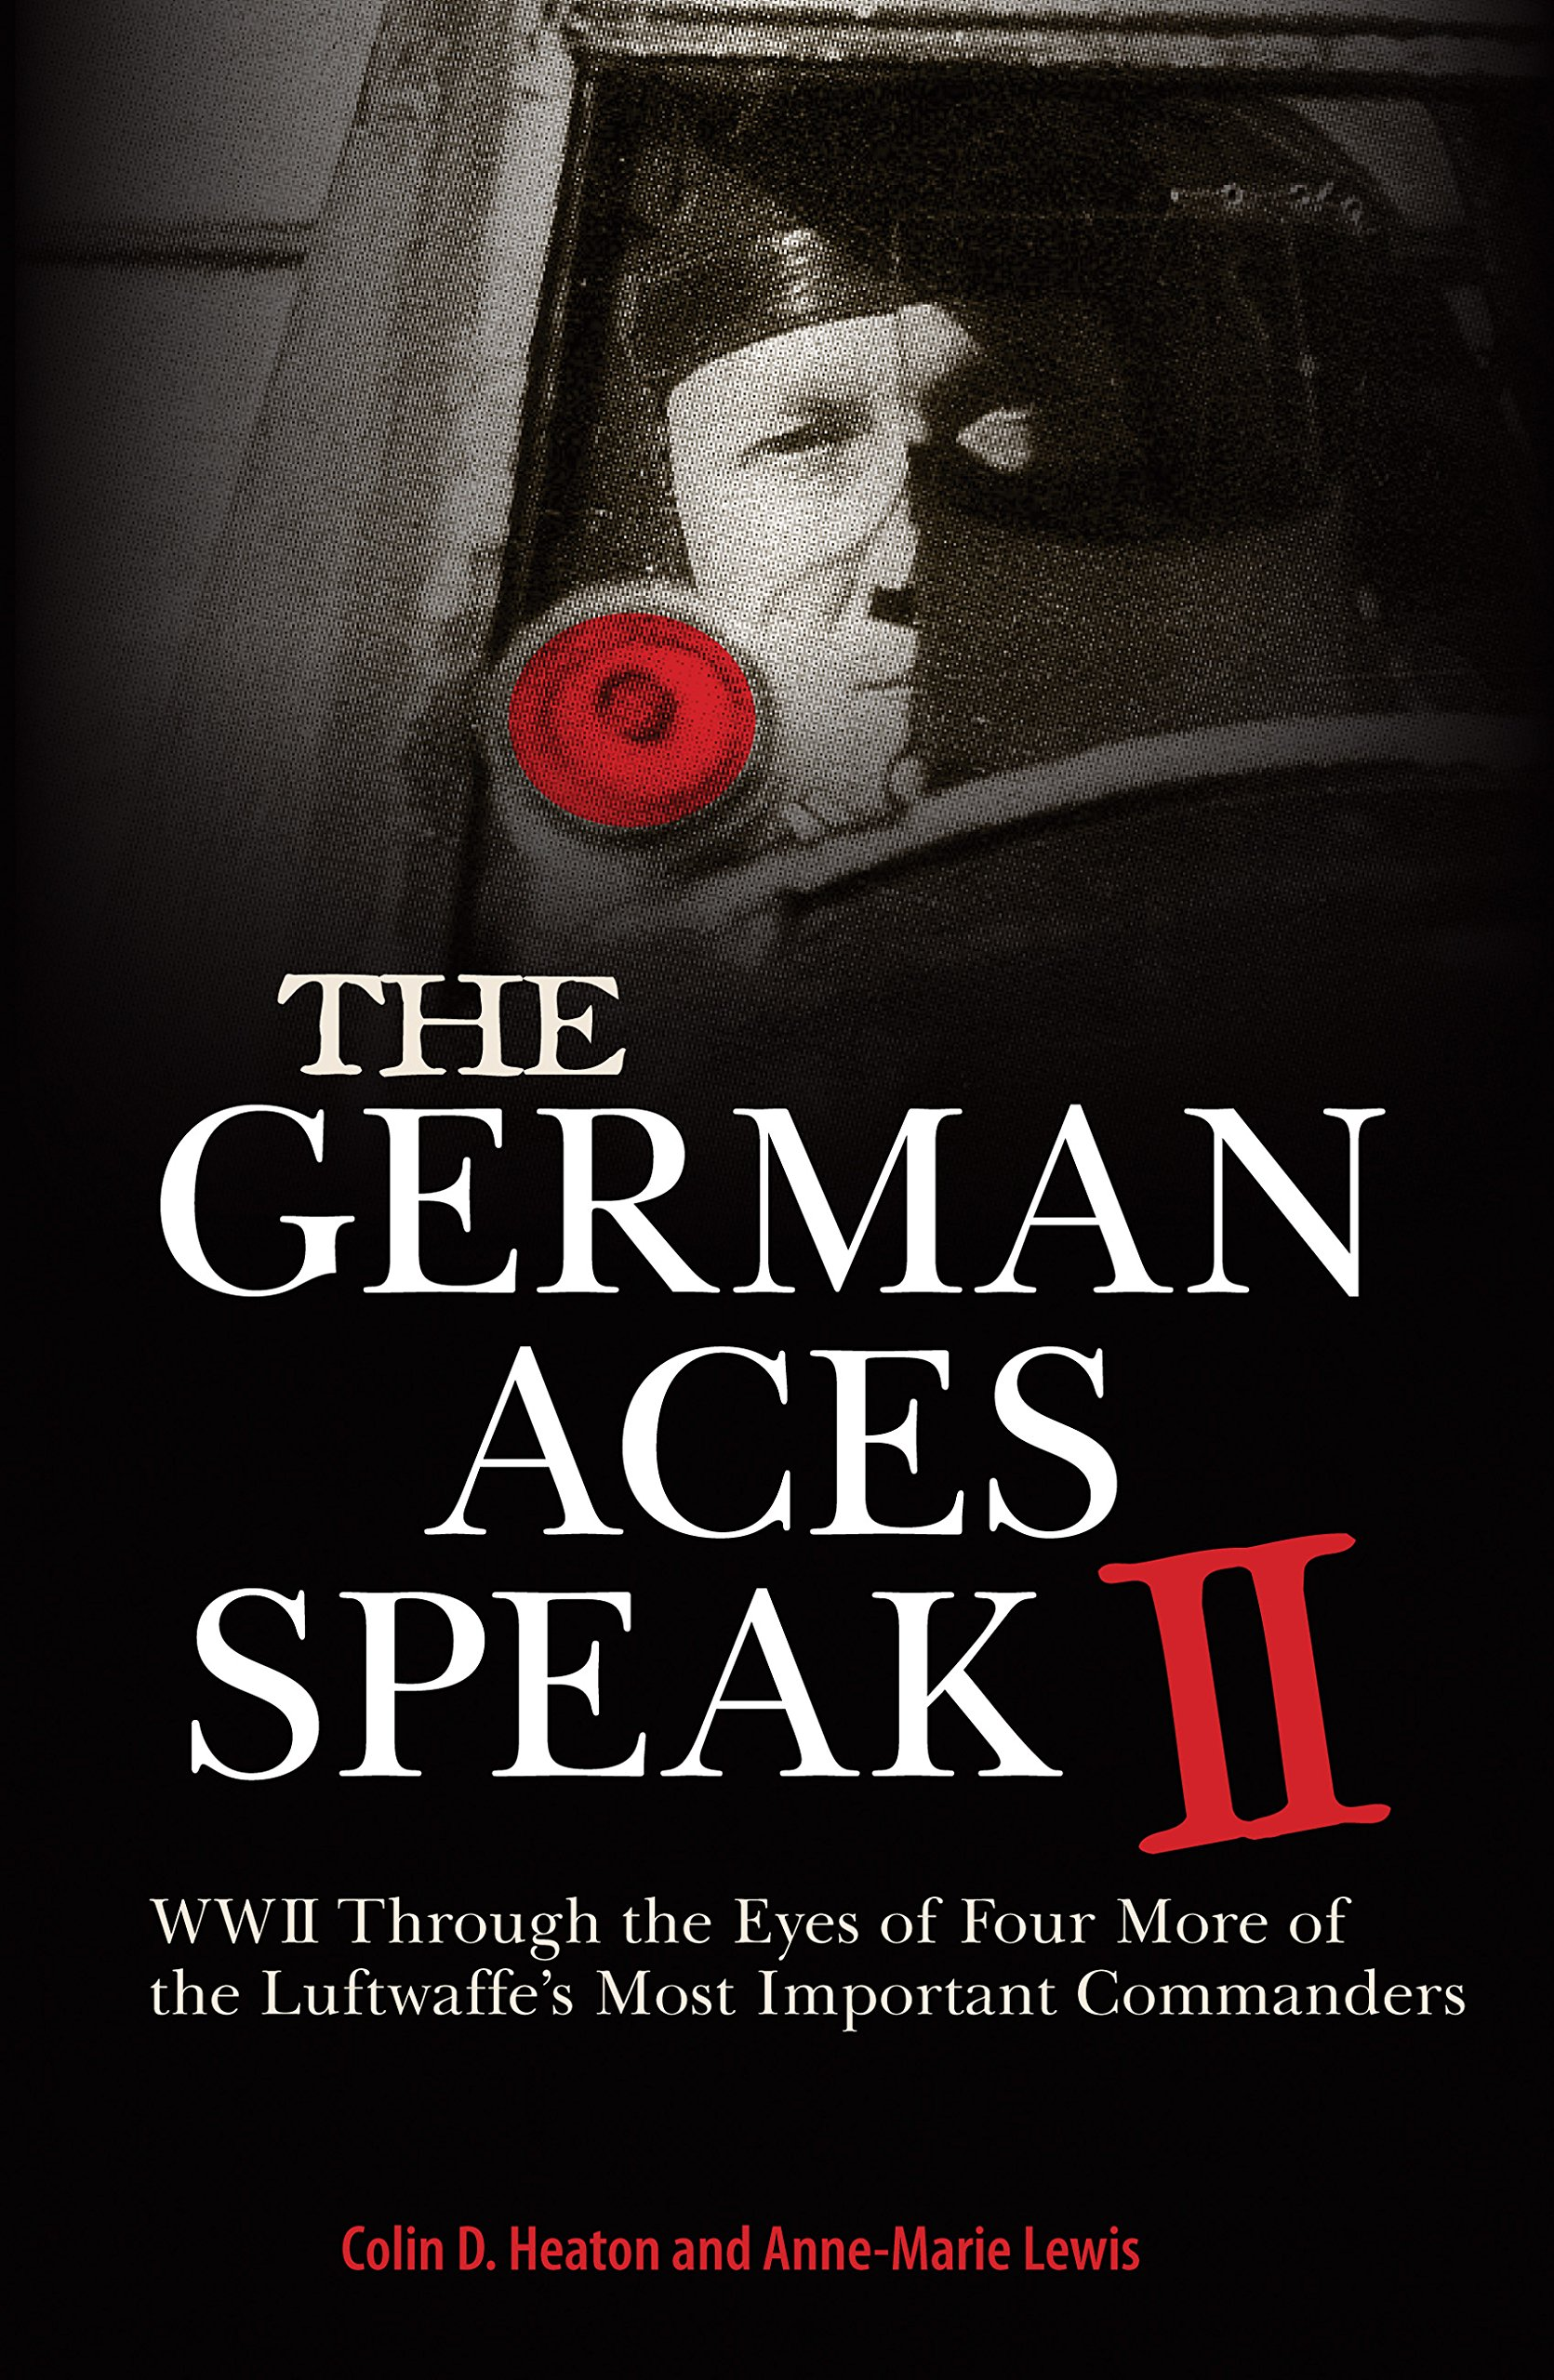 The German Aces Speak II: World War II Through the Eyes of Four More of the Luftwaffe's Most Important Commanders pdf epub